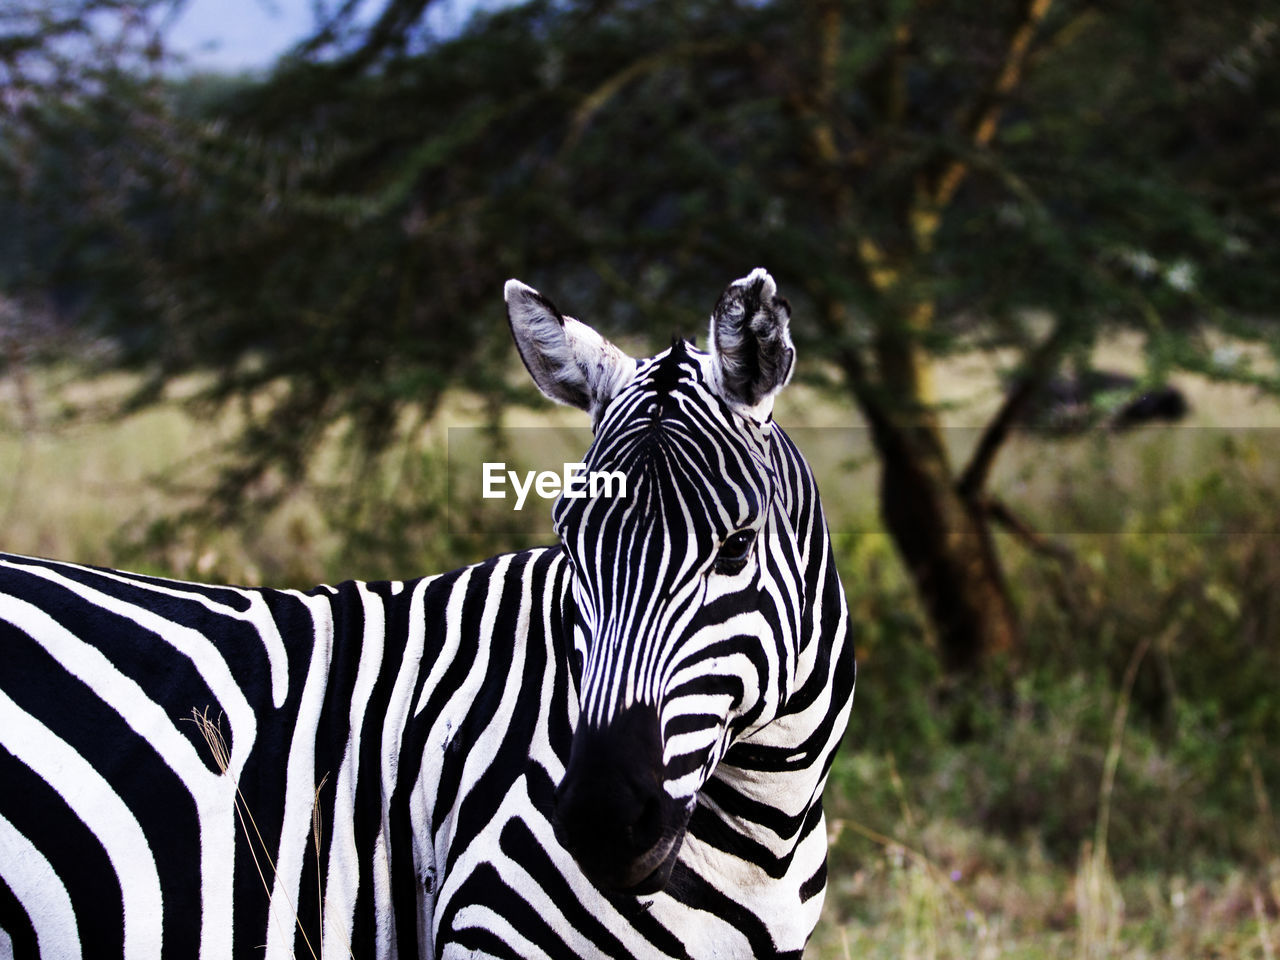 striped, animal wildlife, animal themes, zebra, animals in the wild, animal, mammal, one animal, vertebrate, focus on foreground, animal markings, no people, plant, nature, land, tree, safari, day, domestic animals, herbivorous, outdoors, animal head